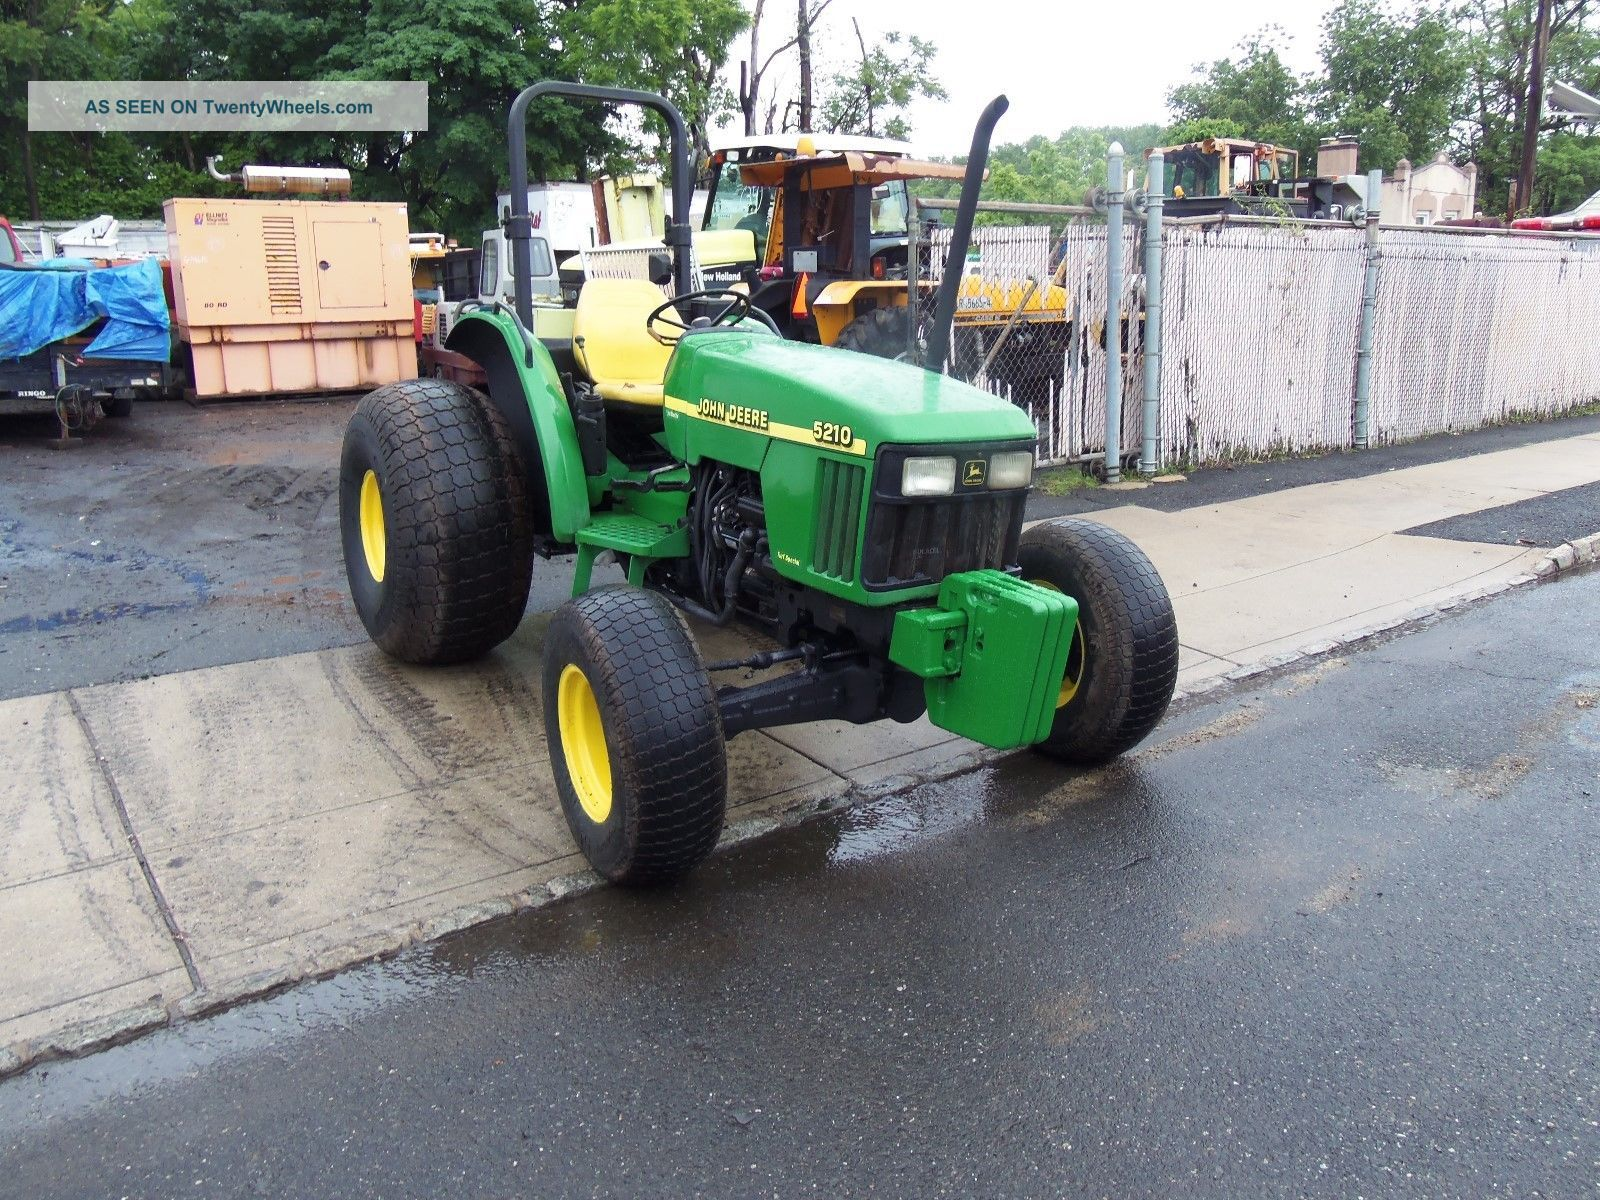 John Deere 5210 4x4 Tractor Daul Remotes Three Point Hitch Tractors photo